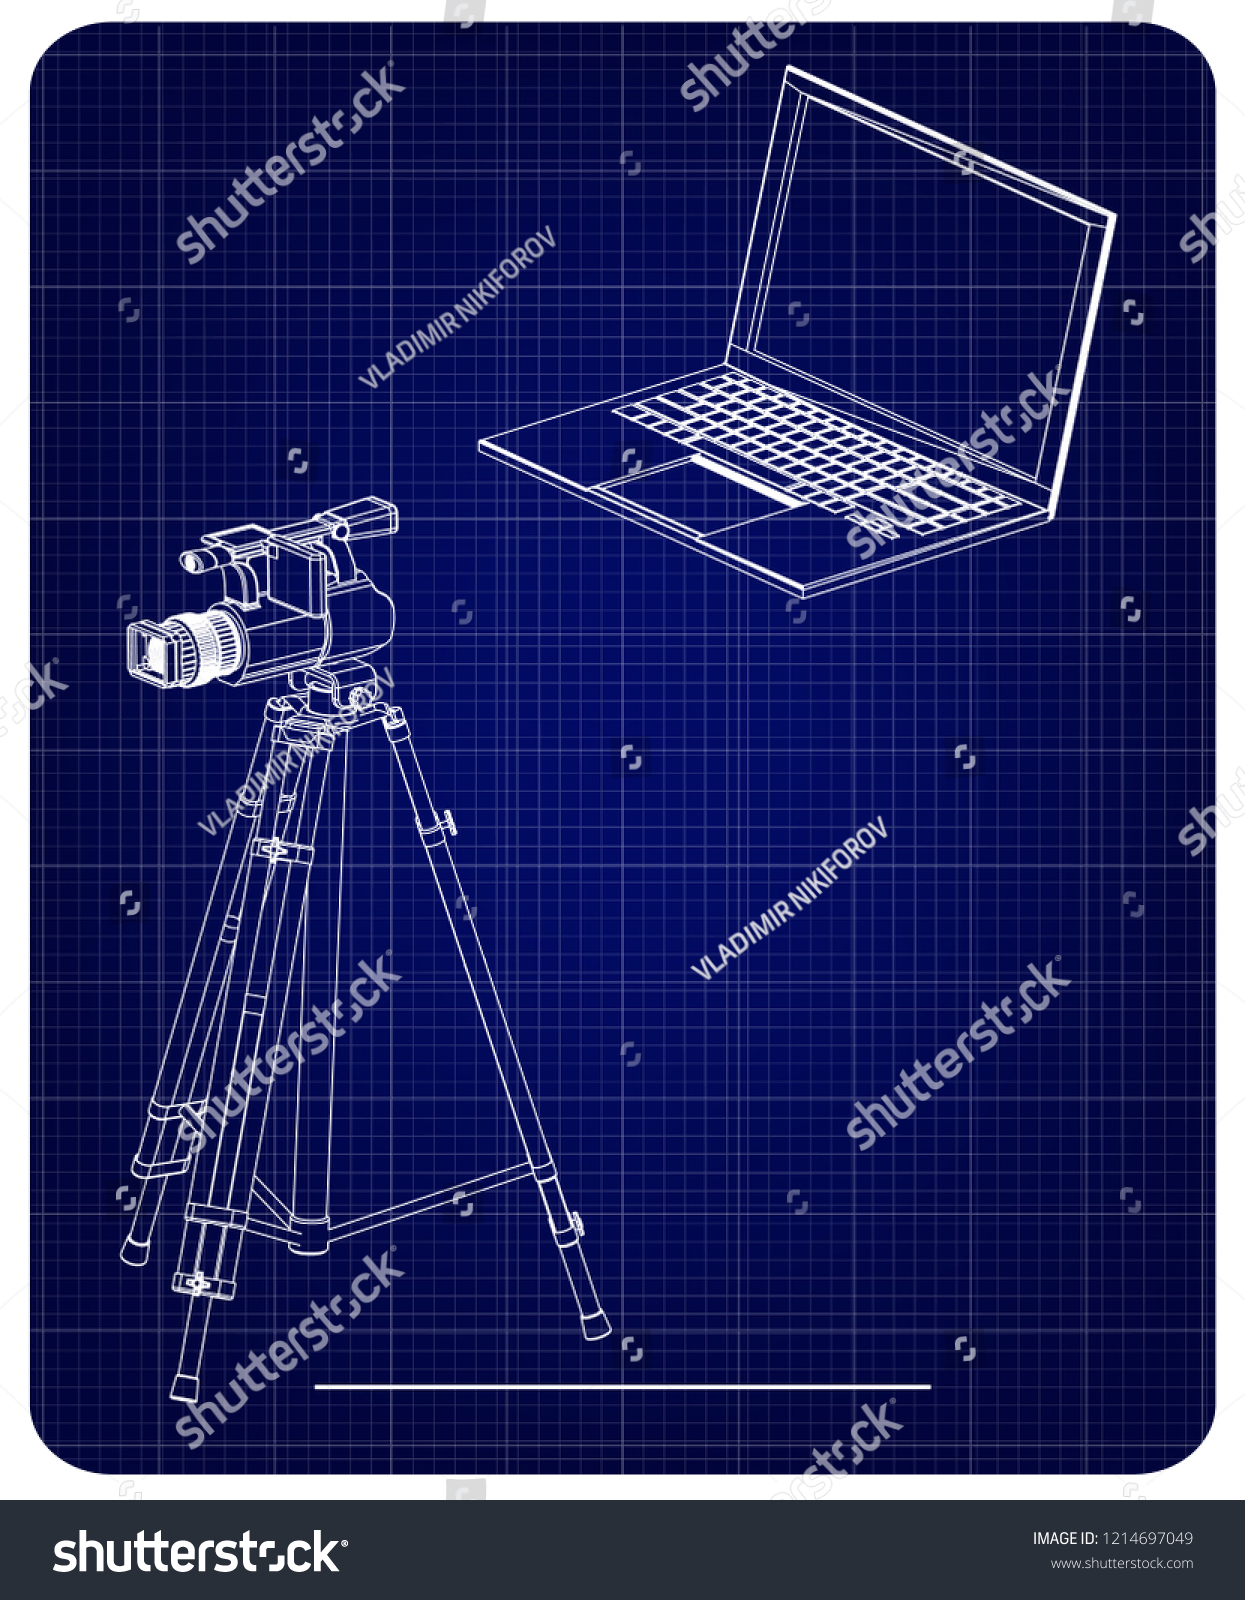 hight resolution of camcorder laptop diagram schematic diagrams laptop inside parts 3 d model laptop camcorder tripod on stock